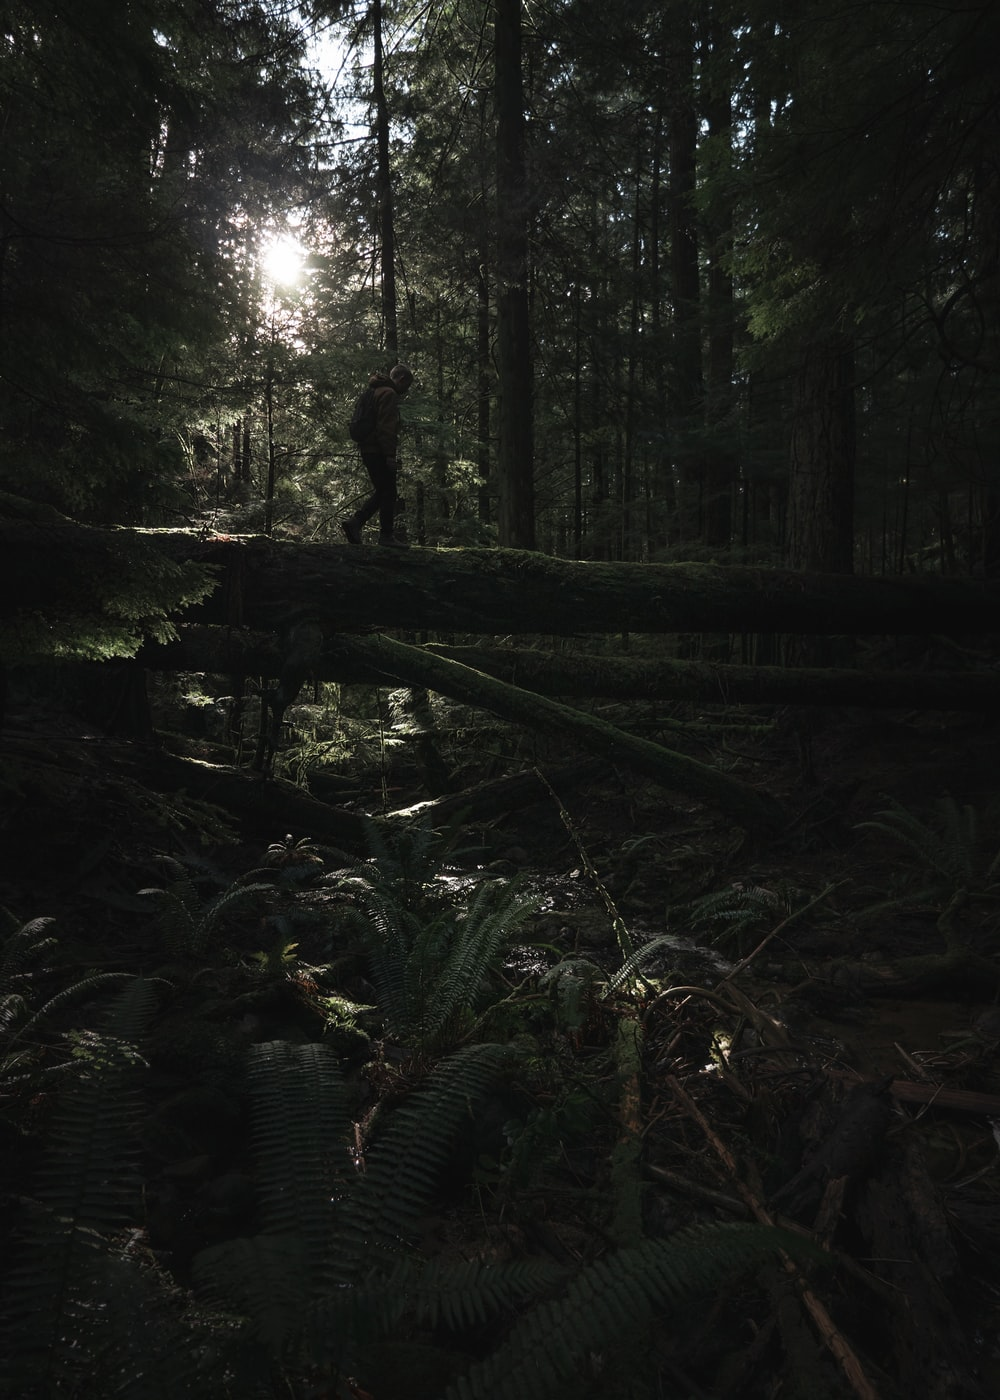 man walking on tree log